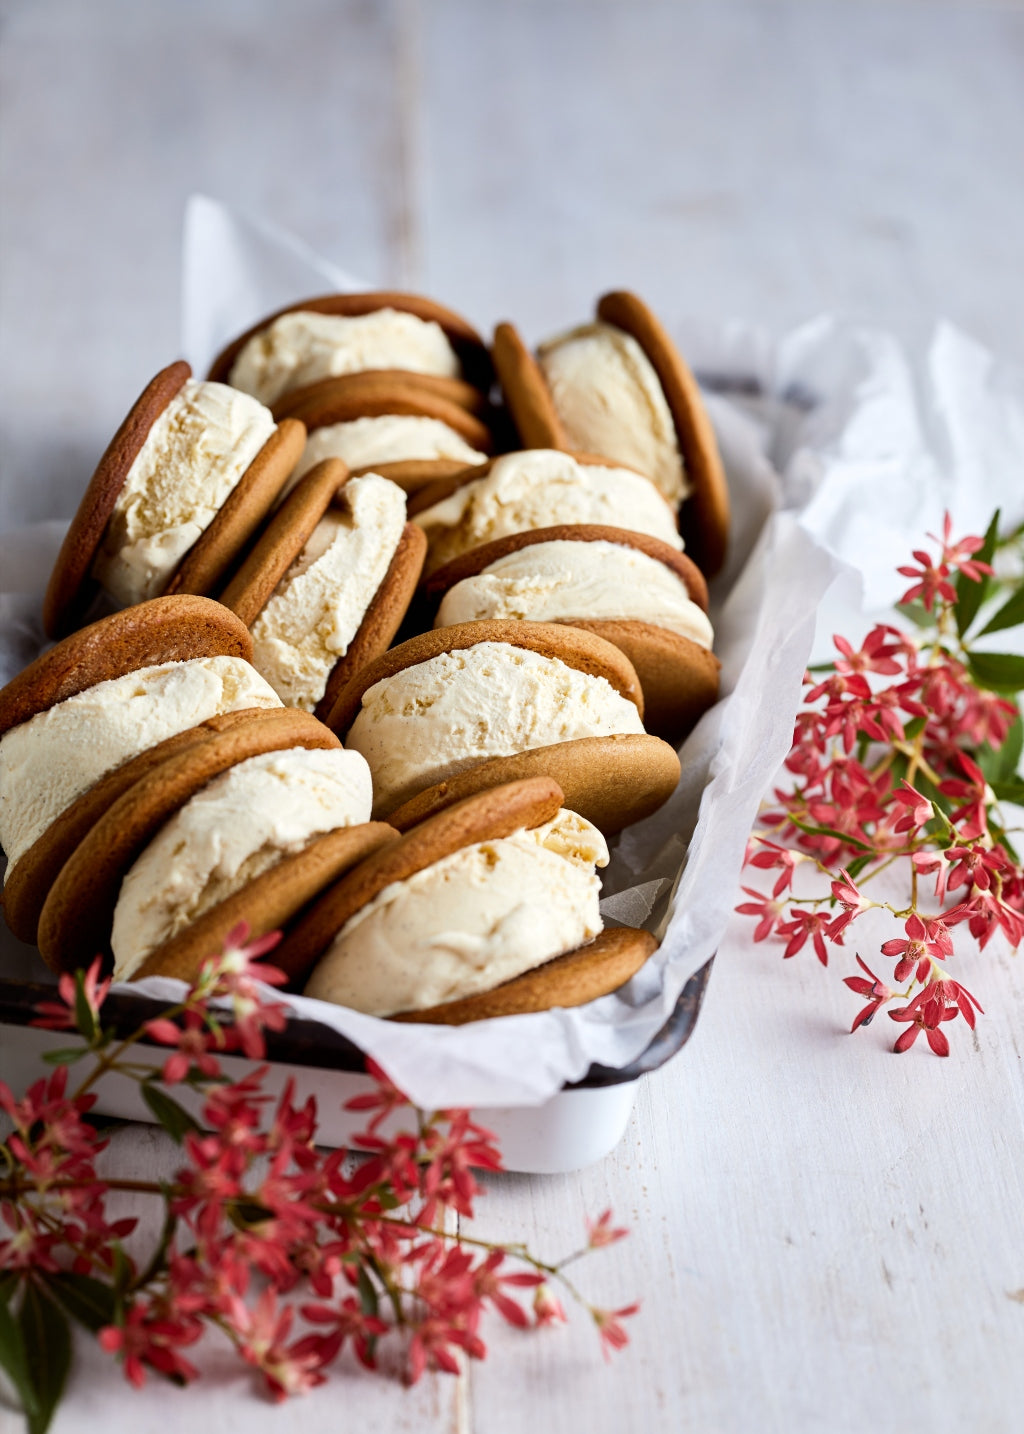 Charlotte Ree's Gingerbread Ice Cream Sandwiches